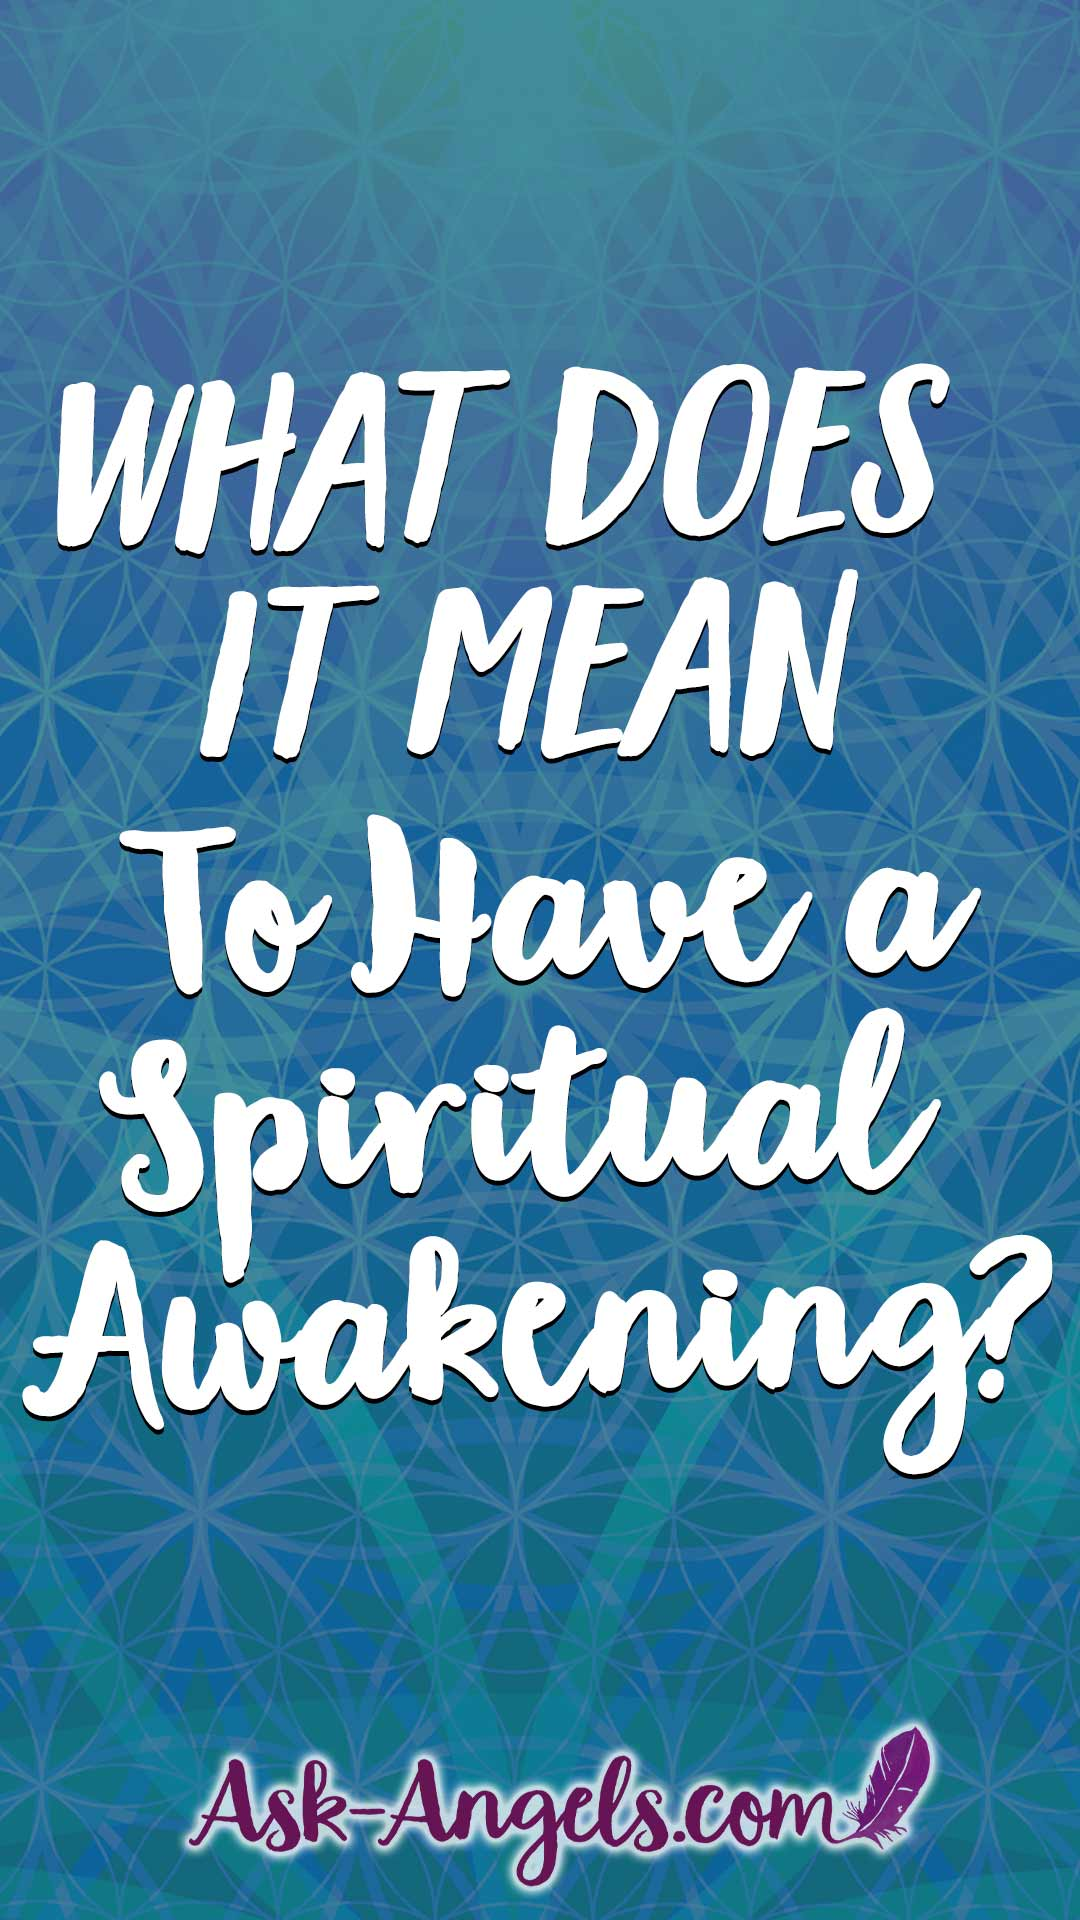 What Does It Mean to Have a Spiritual Awakening... And are you having one?